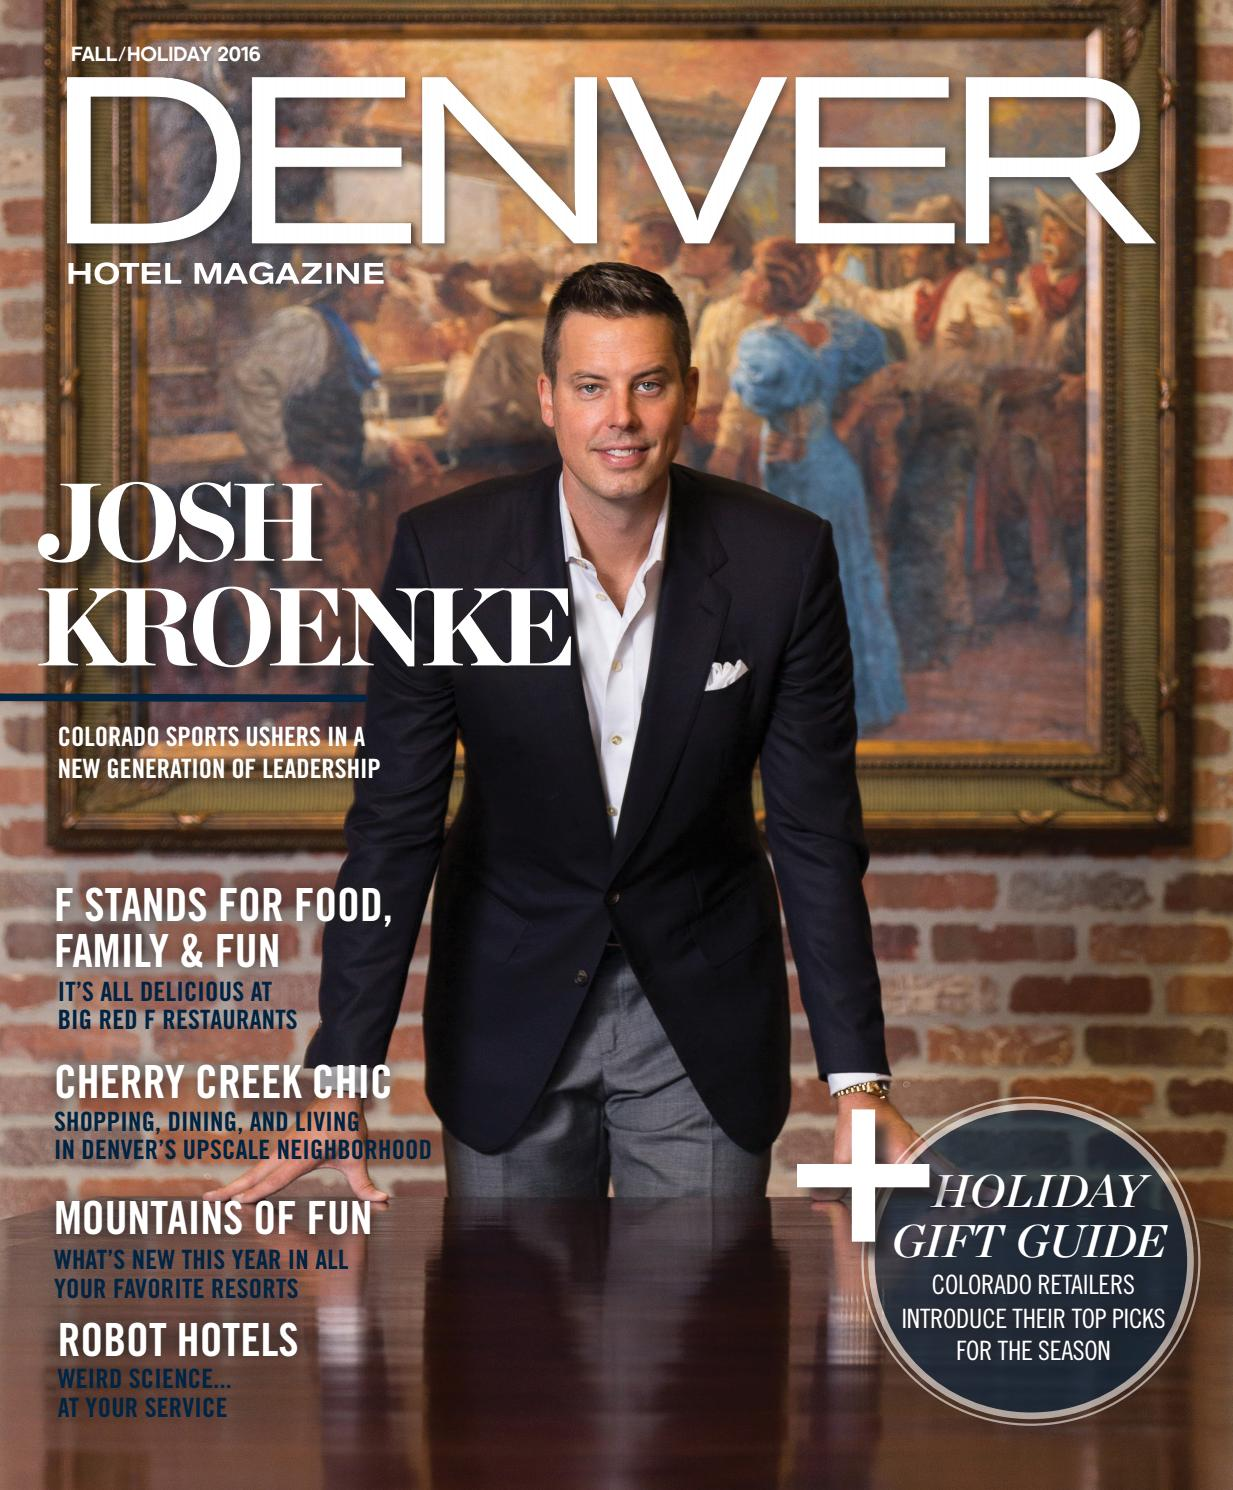 Denver Hotel Magazine Fall Holiday 2016 by Dallas Hotel Magazine - issuu ef5d1961ab